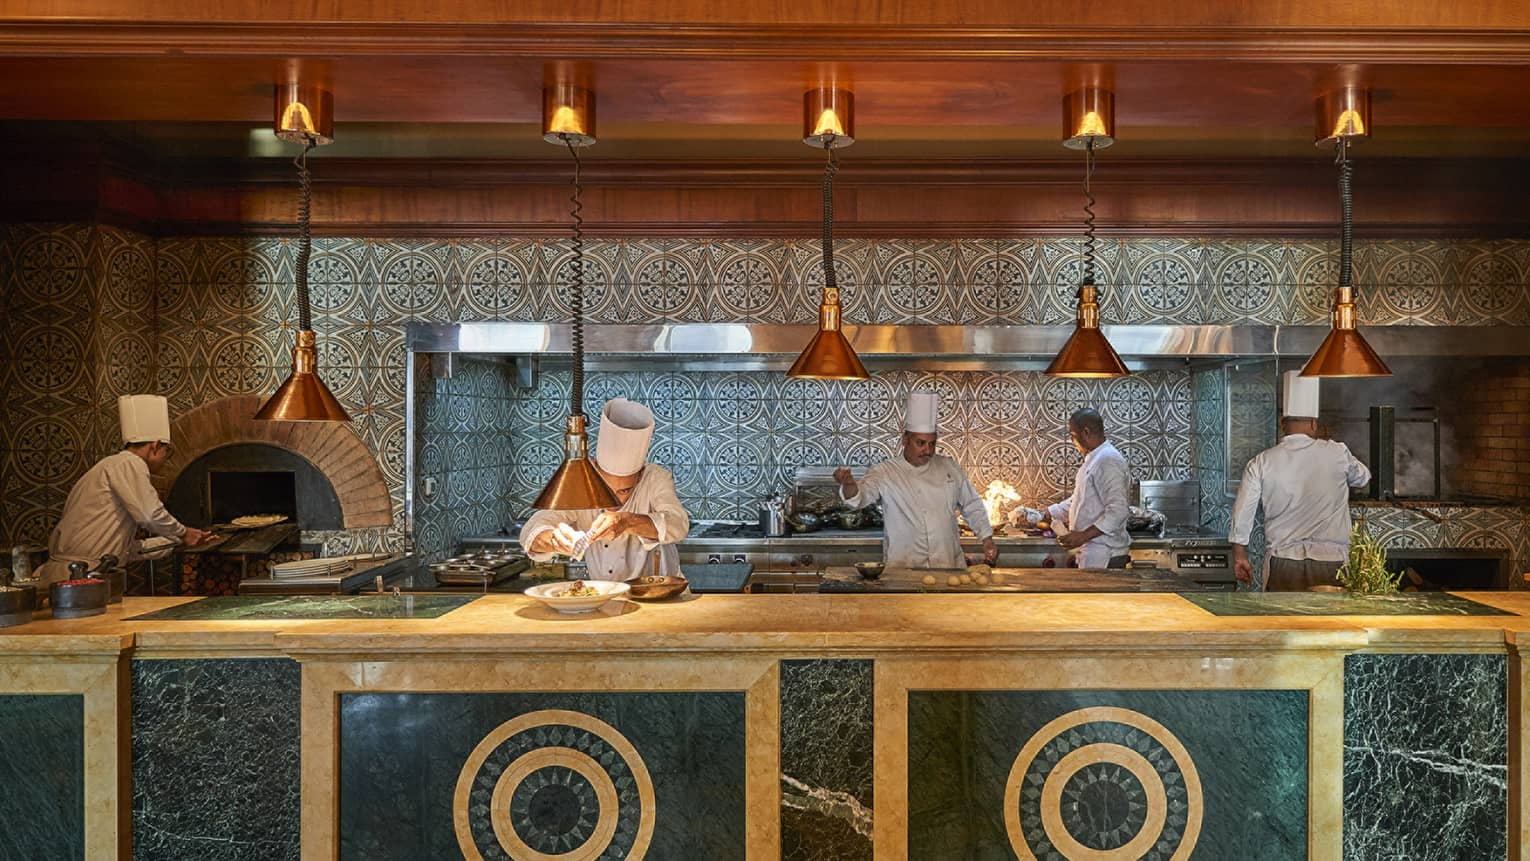 Bella chefs in white coats and hats prepare meals on large cream-and-brown marble counter under brass lamps